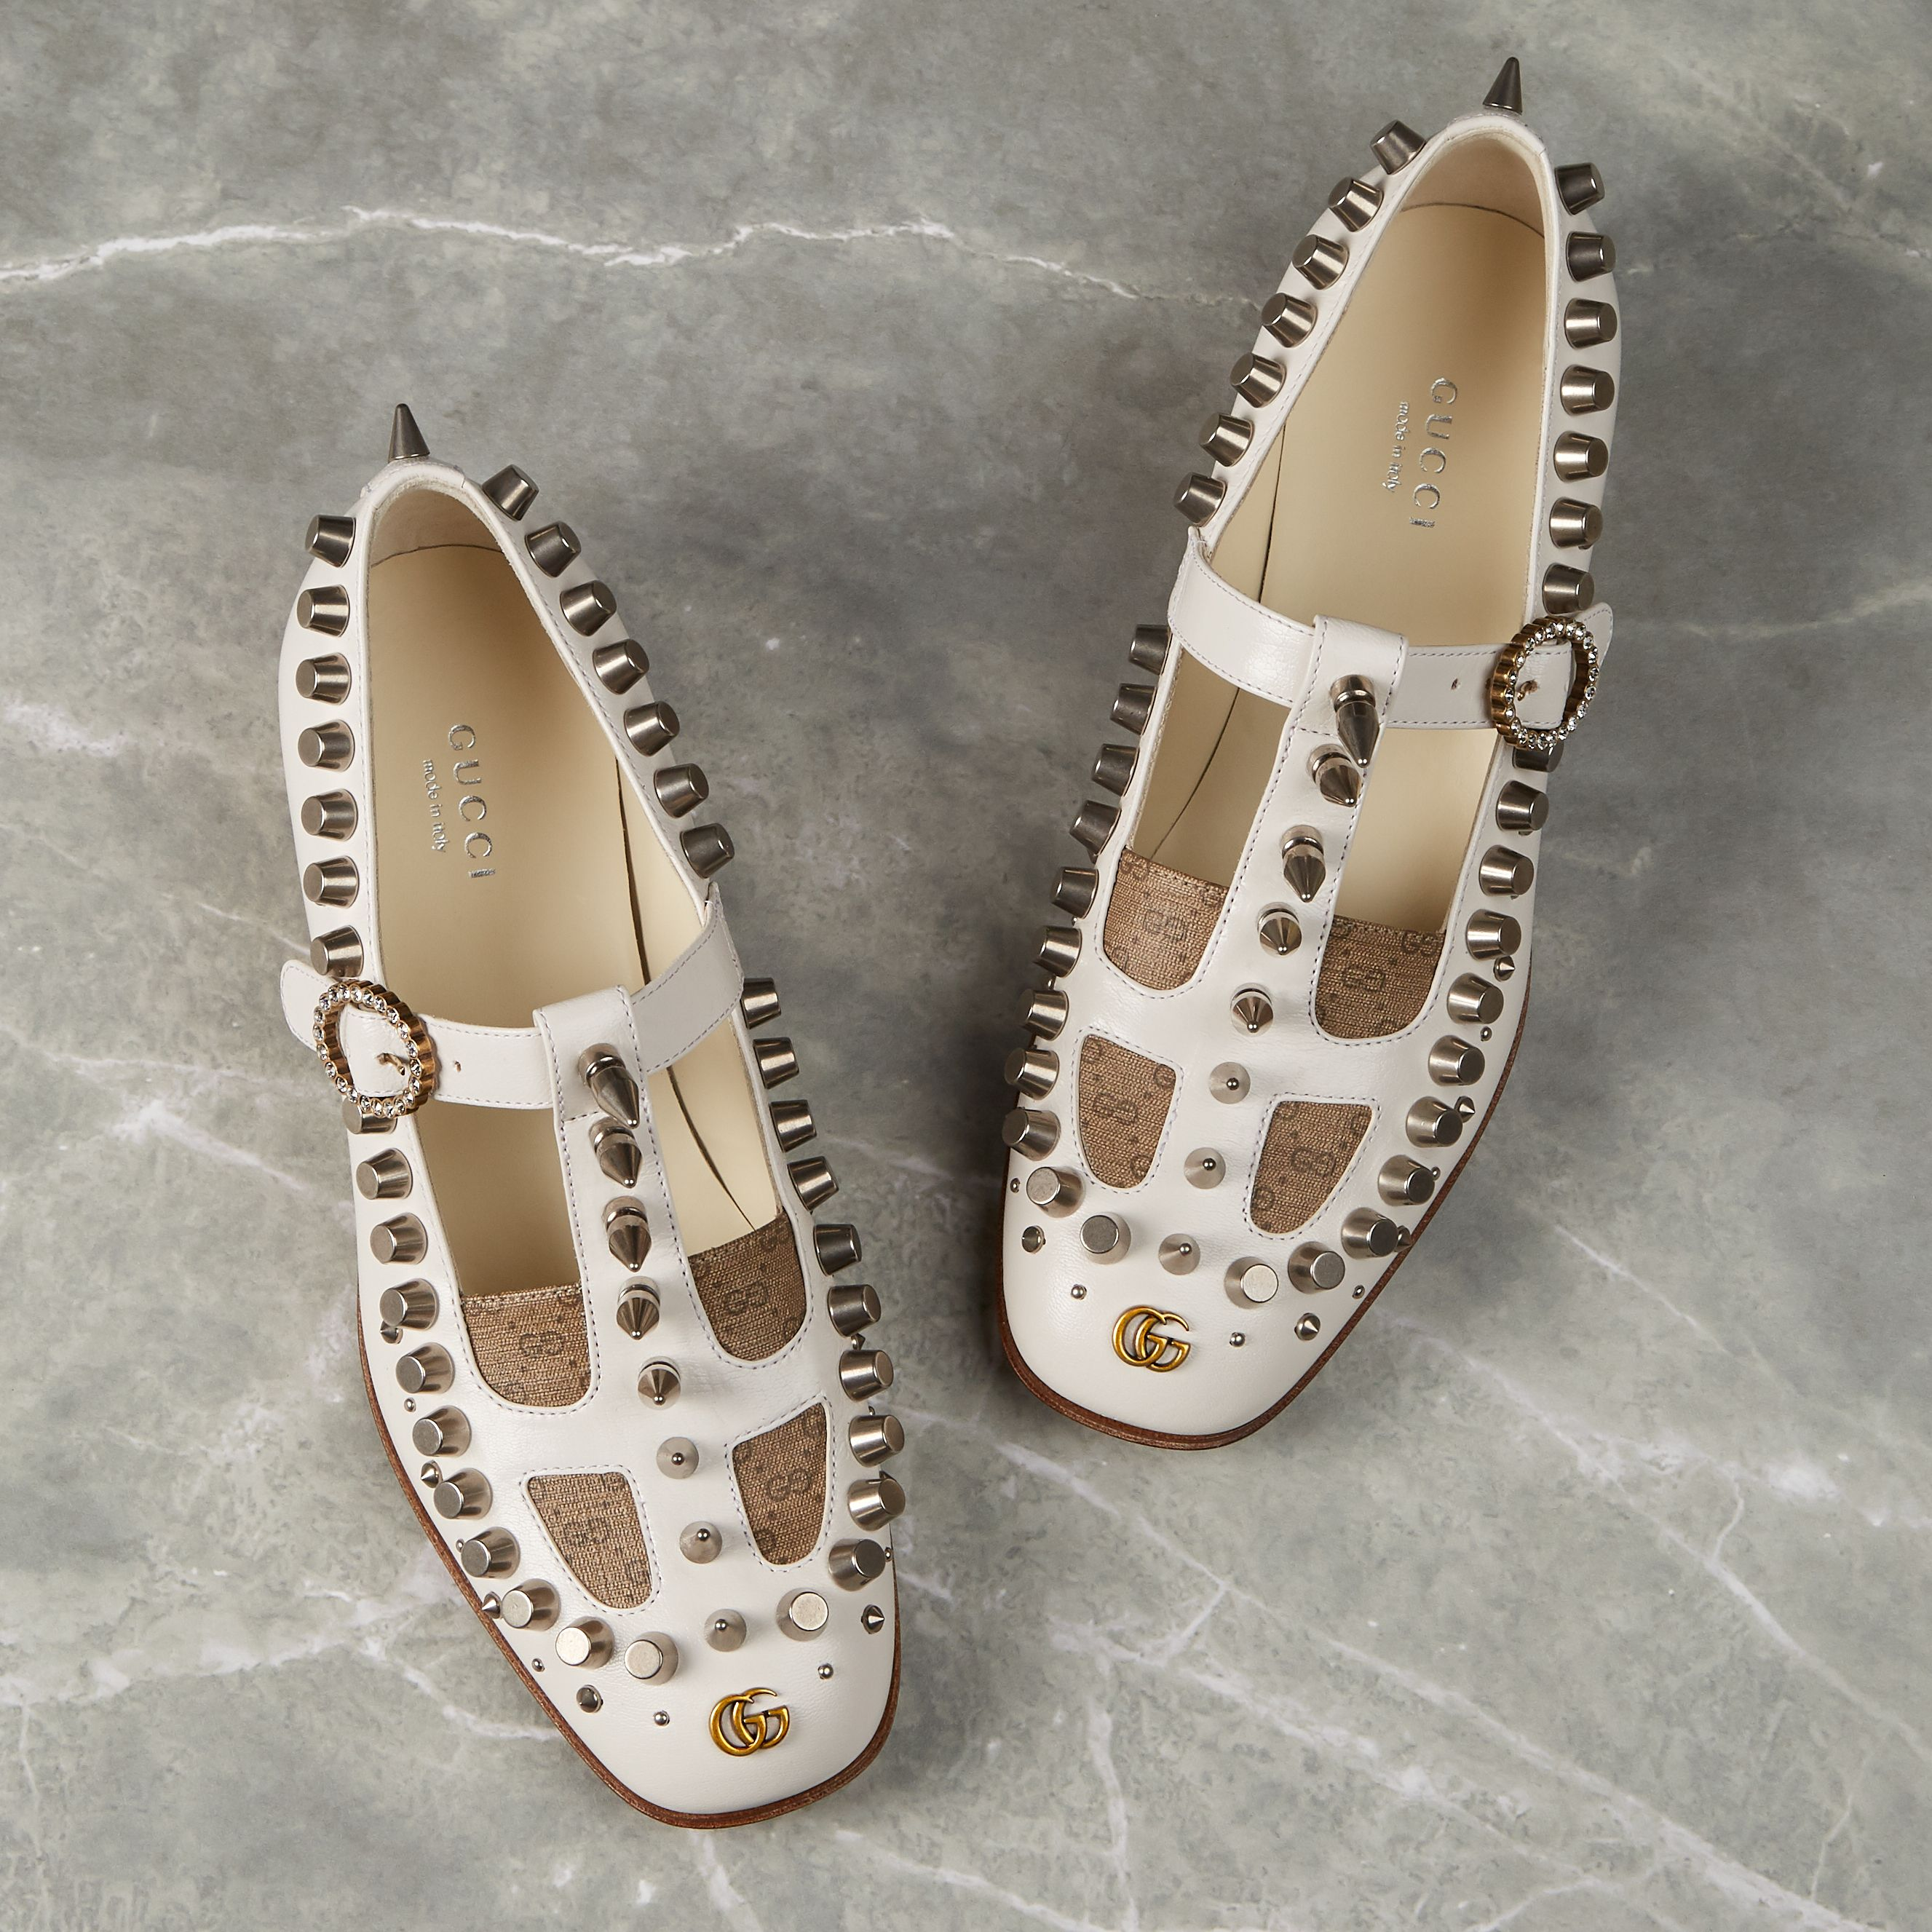 Leather loafers, Studded leather